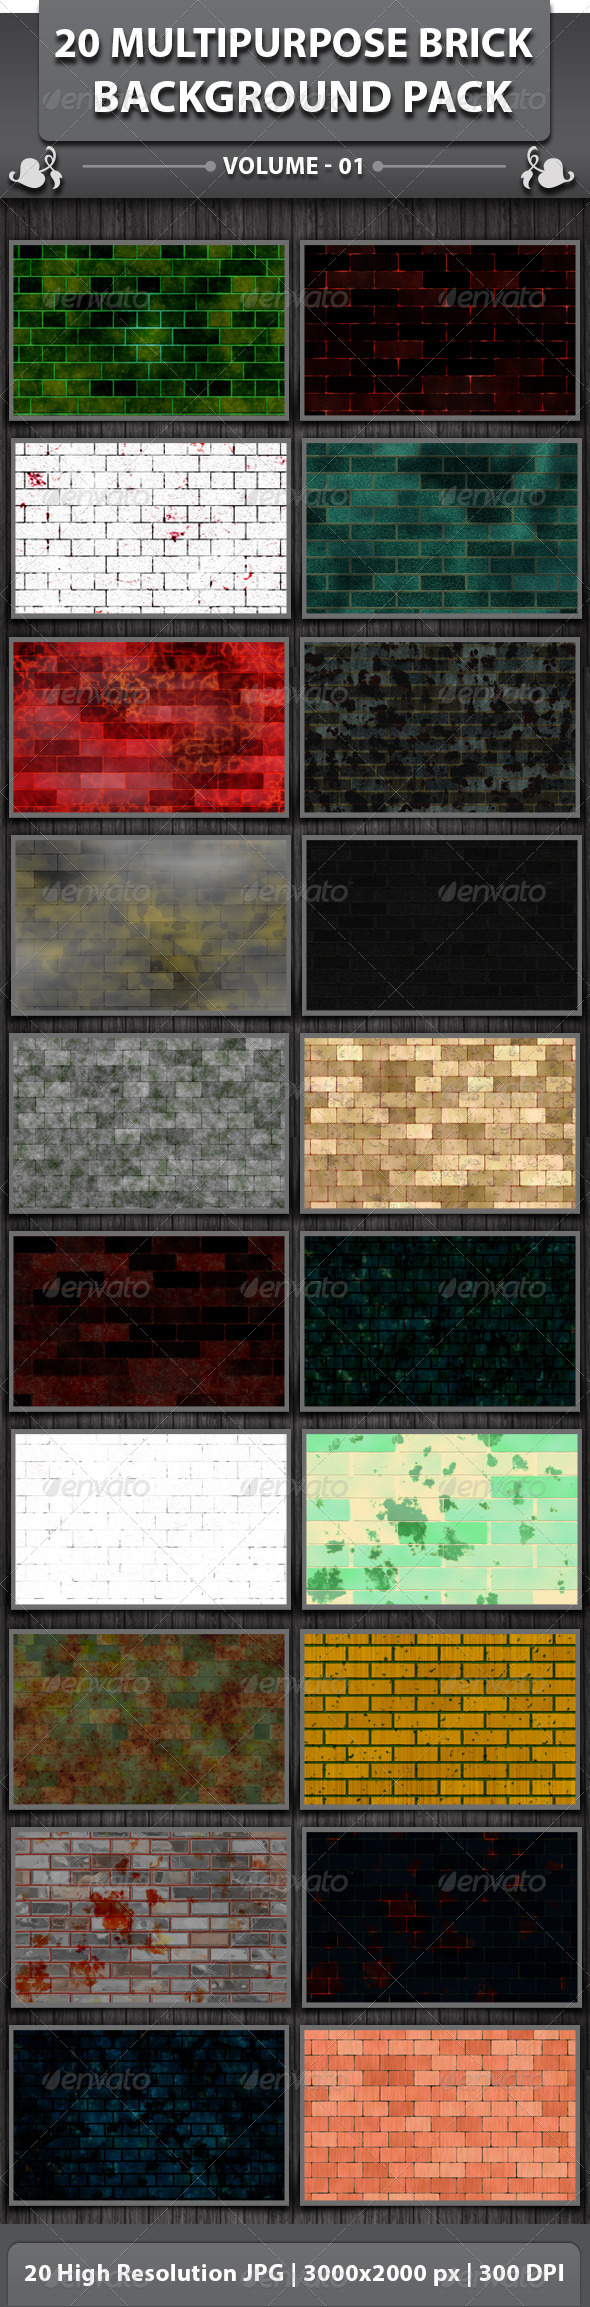 GraphicRiver 20 Multipurpose Brick Background Pack 5027098